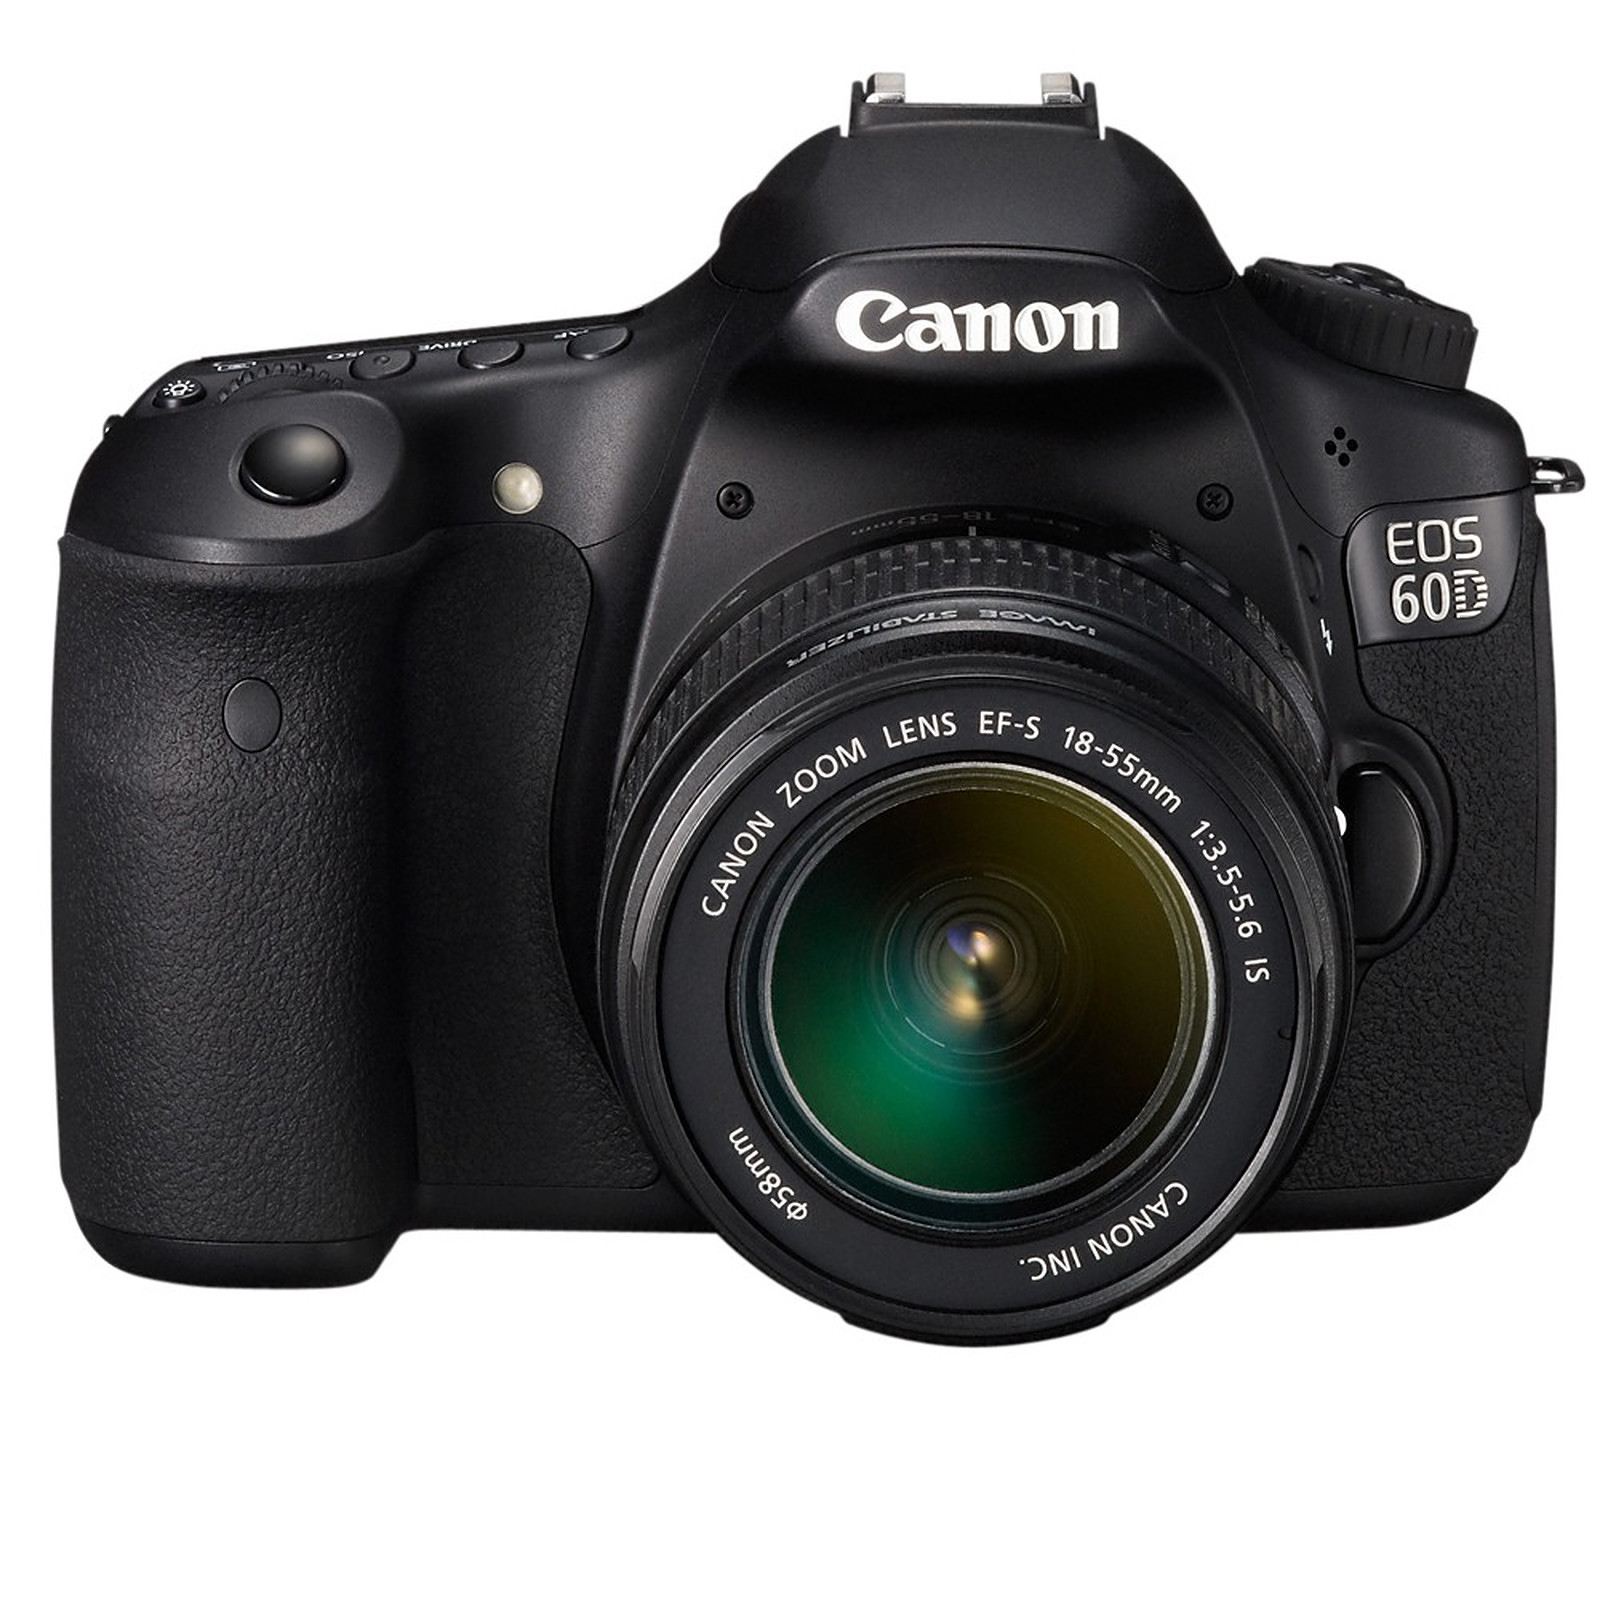 Canon EOS 60D + Objectif EF-S 18-55mm f/3.5-5.6 IS